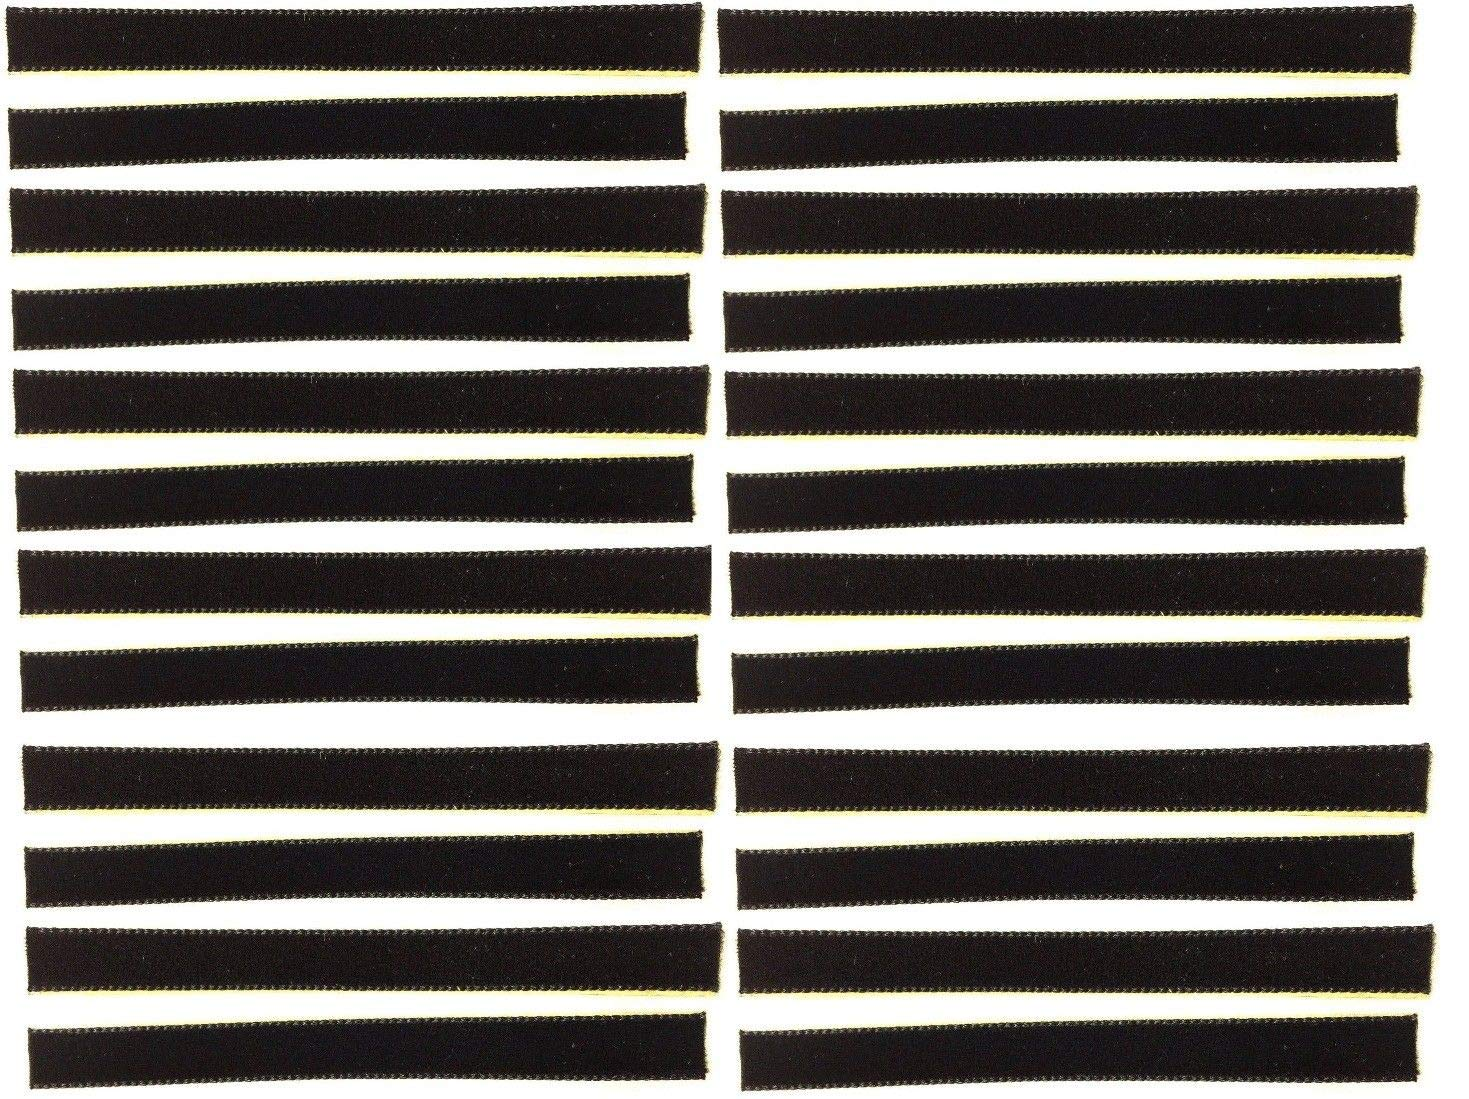 24-Pack of Black Over-Sized VPI Machine/Nitty Gritty/Okki Nokki Replacement LP Vinyl Record Album Cleaning/Cleaner Strips Oversized 3/8'' x 4'' Velvet/Felt/3M Adhesive by Capitol Collectibles